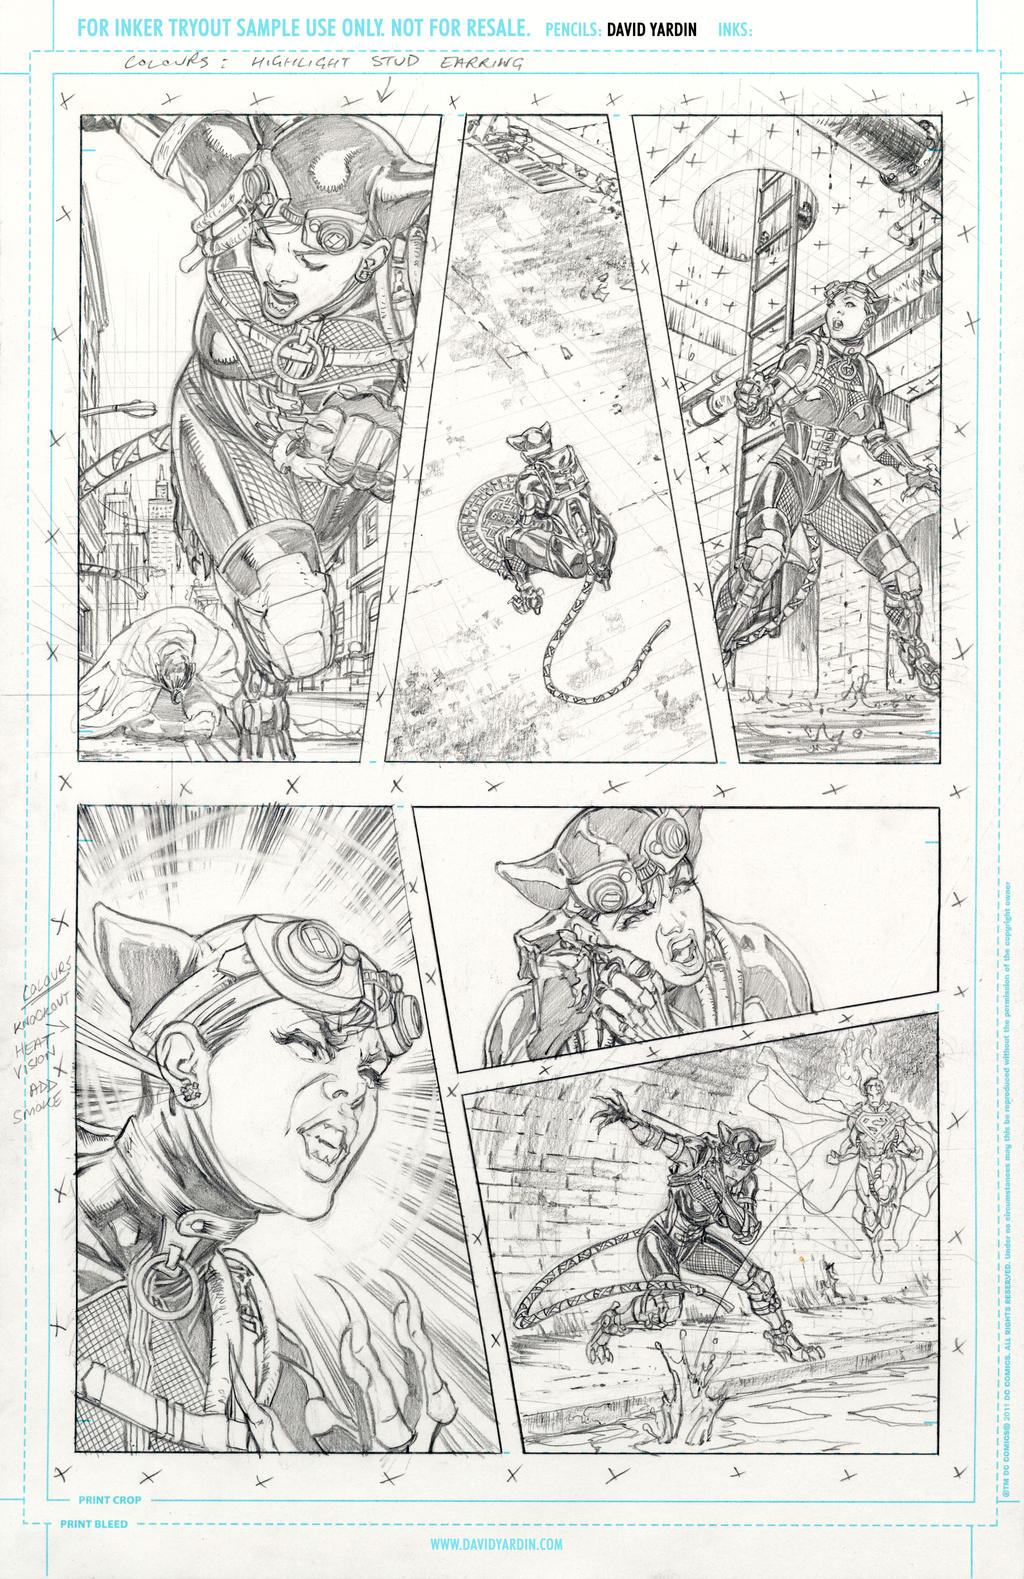 Hi-Res Pencils for inkers Injustice 17 page 6 by davidyardin